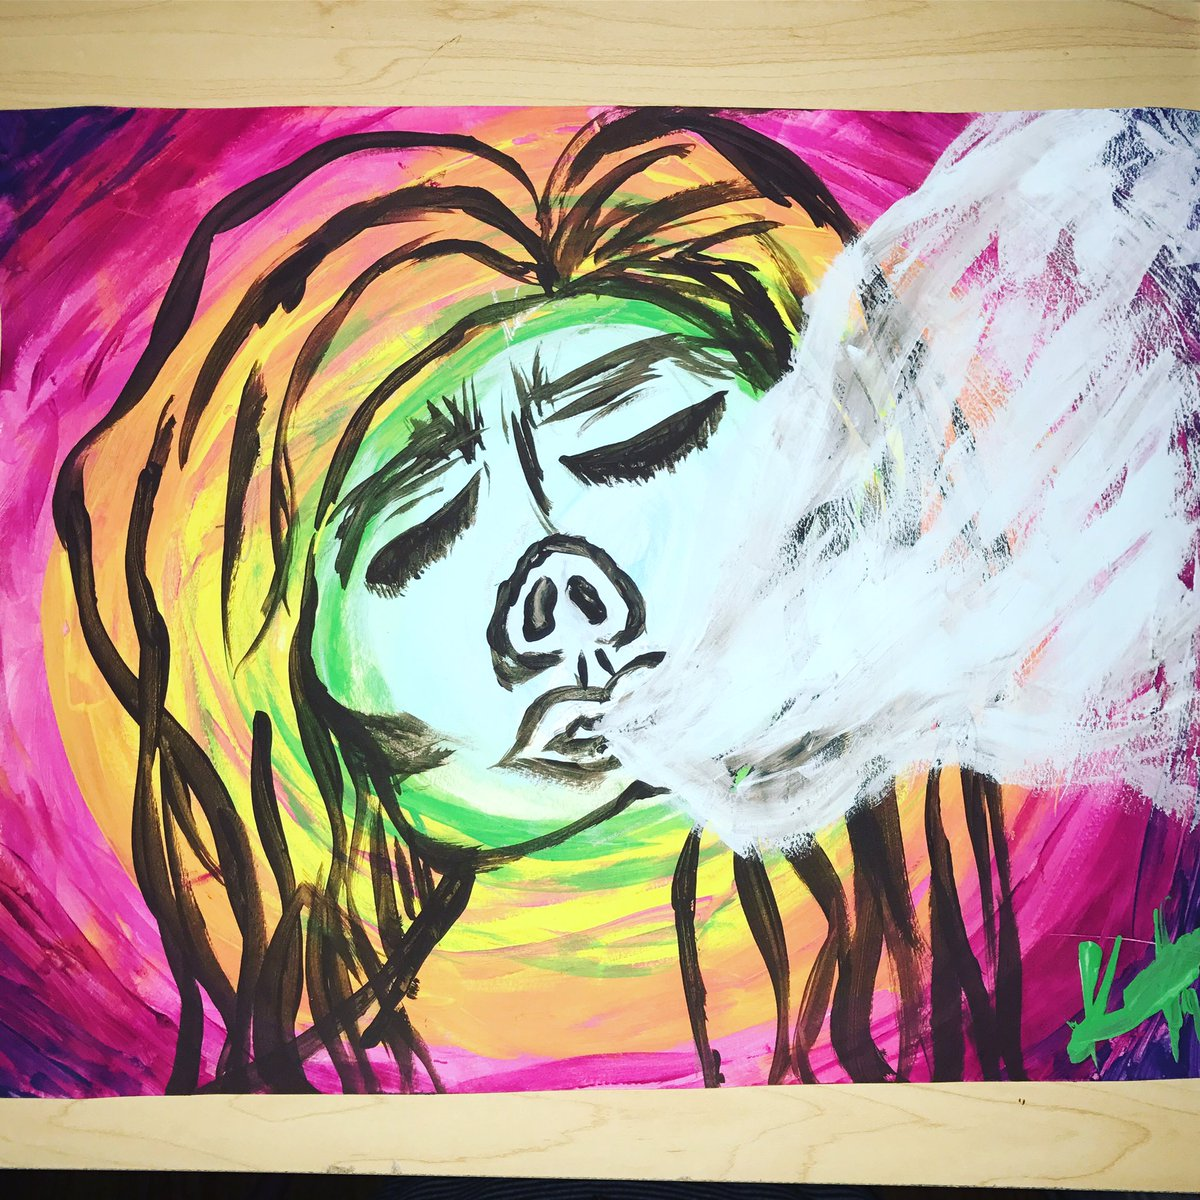 Thank you so much for the beautiful artwork Kayla     http:// Pseudopharm.com/shop  &nbsp;     #art #ArtisticTuesday #FridayFeeIing #FridayMotivation #painting #Laurel #LoveATreeDay #ThankYou #onlineshopping #Motivation<br>http://pic.twitter.com/BhRjNDftIP